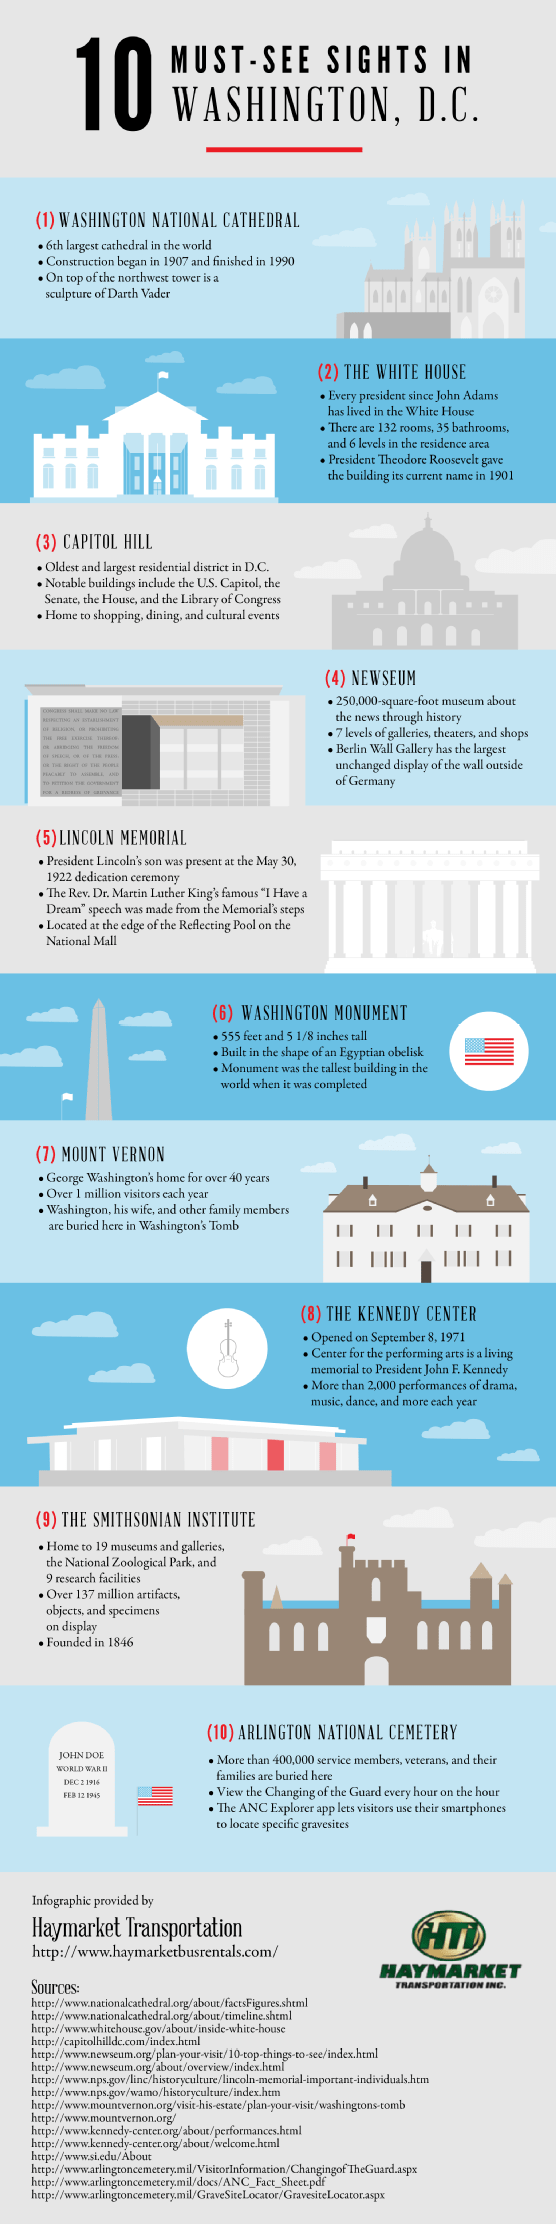 10 Must-See Sights in Washington, D.C. #Infographic